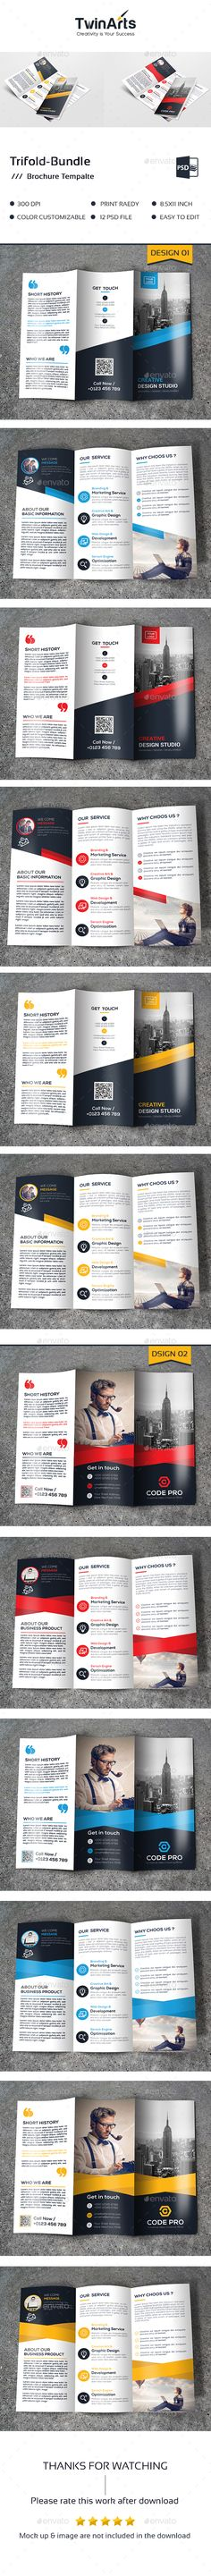 Trifold Bundle_2 in 1 - Brochures Print Templates